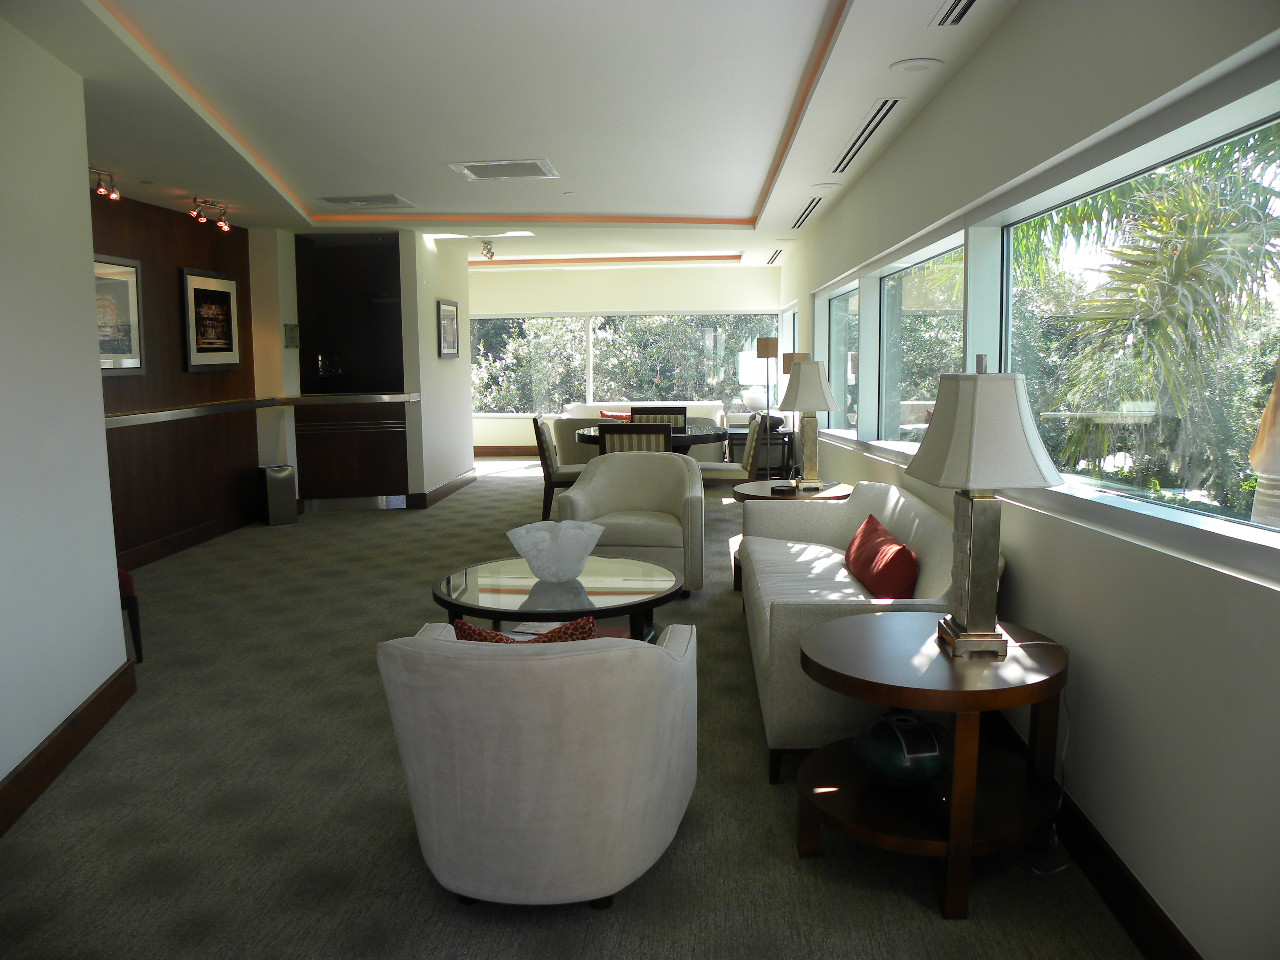 Founders Lounge - Private lounge with a bar and an outdoor balcony.